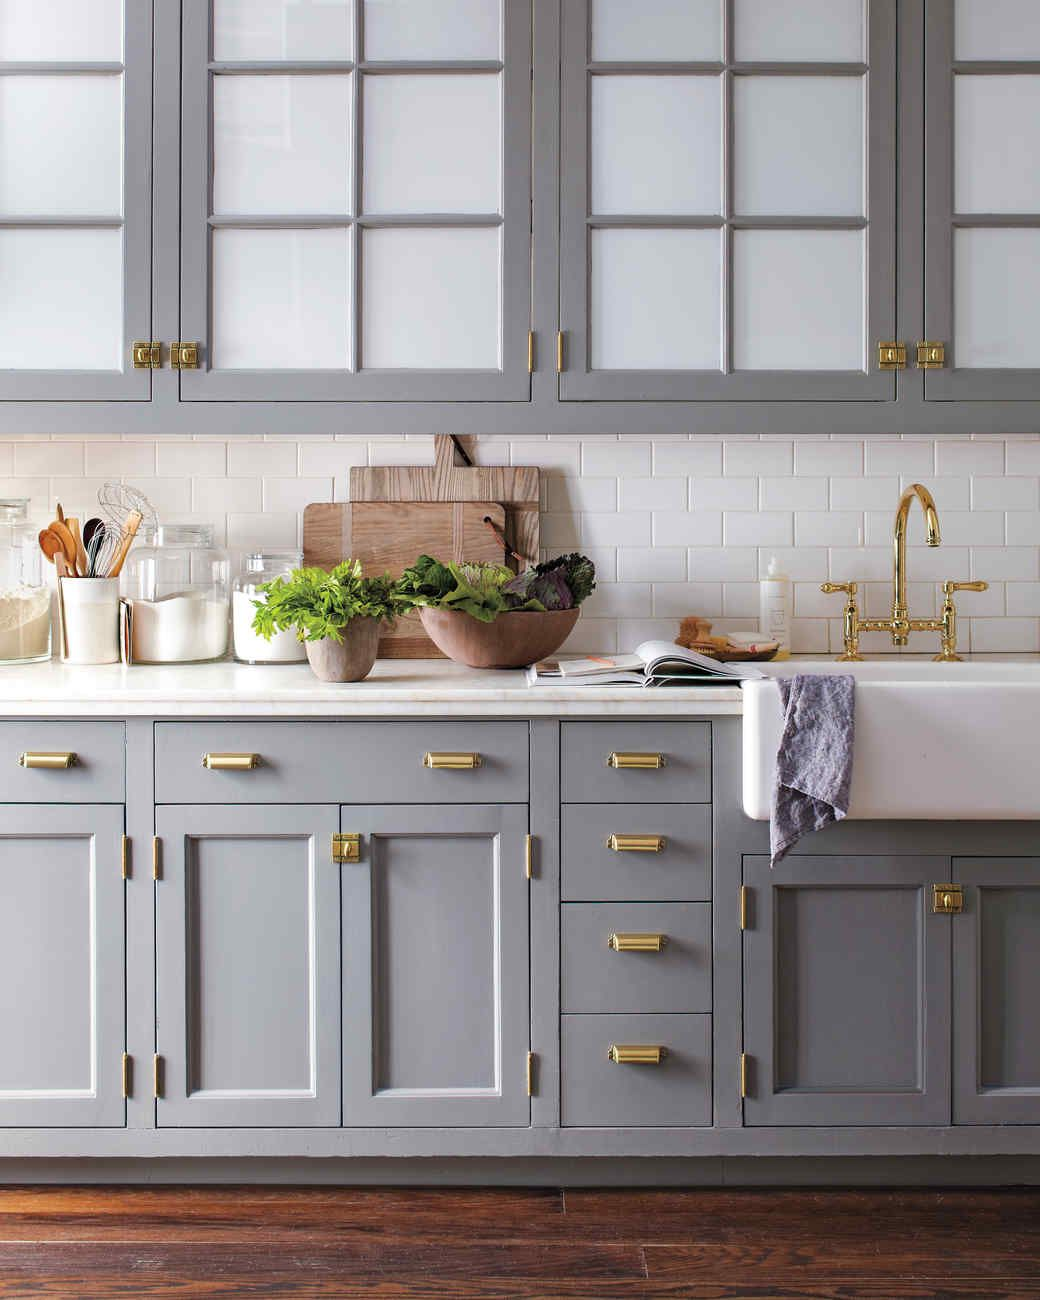 Decorate With Brass Blue Gray Kitchen Cabinets Kitchen Cabinet Design Grey Kitchen Cabinets